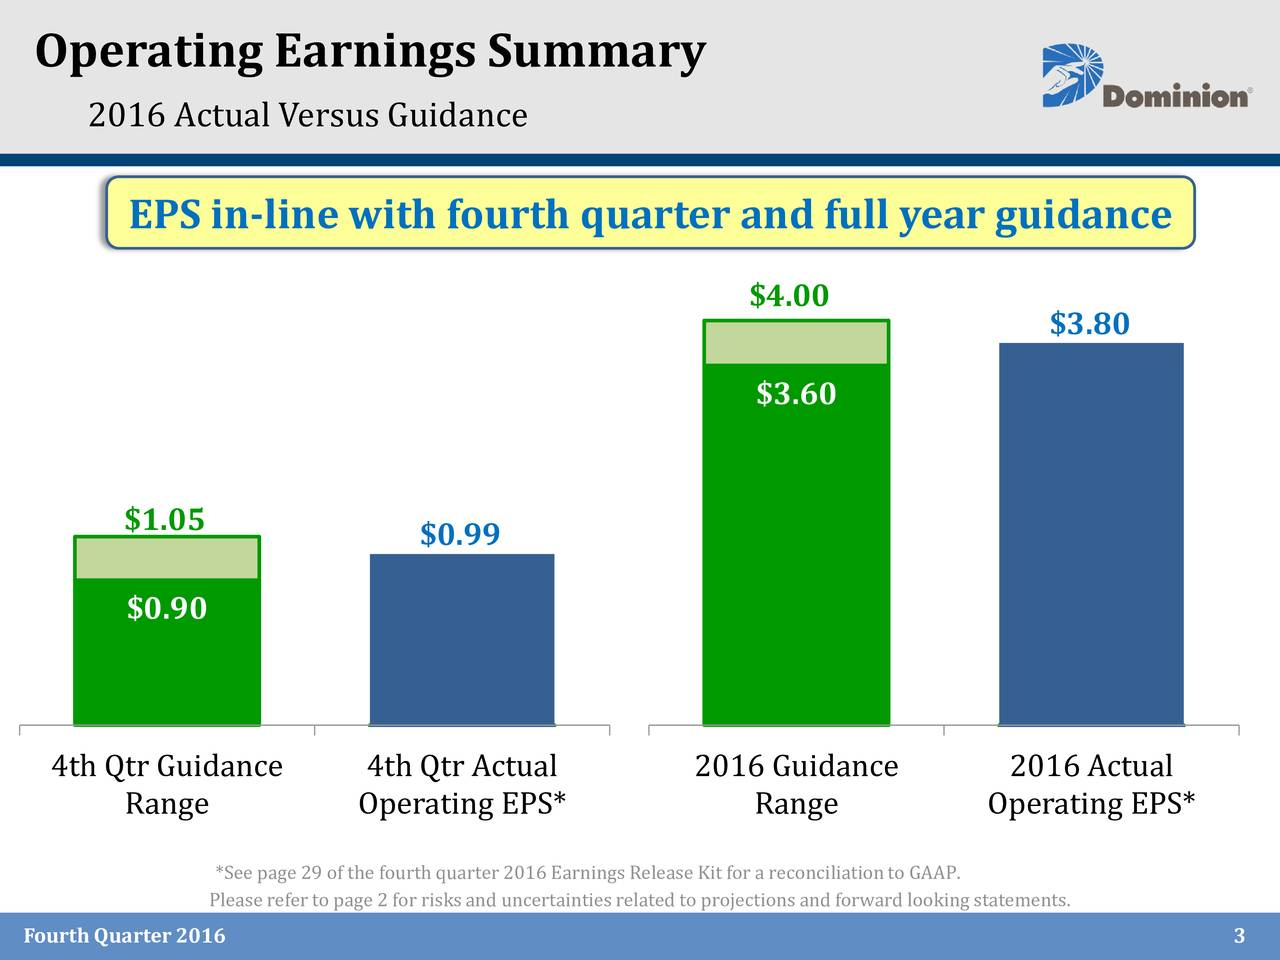 2016 Actual Versus Guidance EPS in-line with fourth quarter and full year guidance $4.00 $3.80 $3.60 $1.05 $0.99 $0.90 4th Qtr Guidance 4th Qtr Actual 2016 Guidance 2016 Actual Range Operating EPS* Range Operating EPS* *See page 29 of the fourth quarter 2016 Earnings ReleaseKit for a reconciliationto GAAP. Pleasereferto page 2 for risksand uncertaintiesrelated to projectionsand forward lookingstatements. Fourth Quarter2016 3